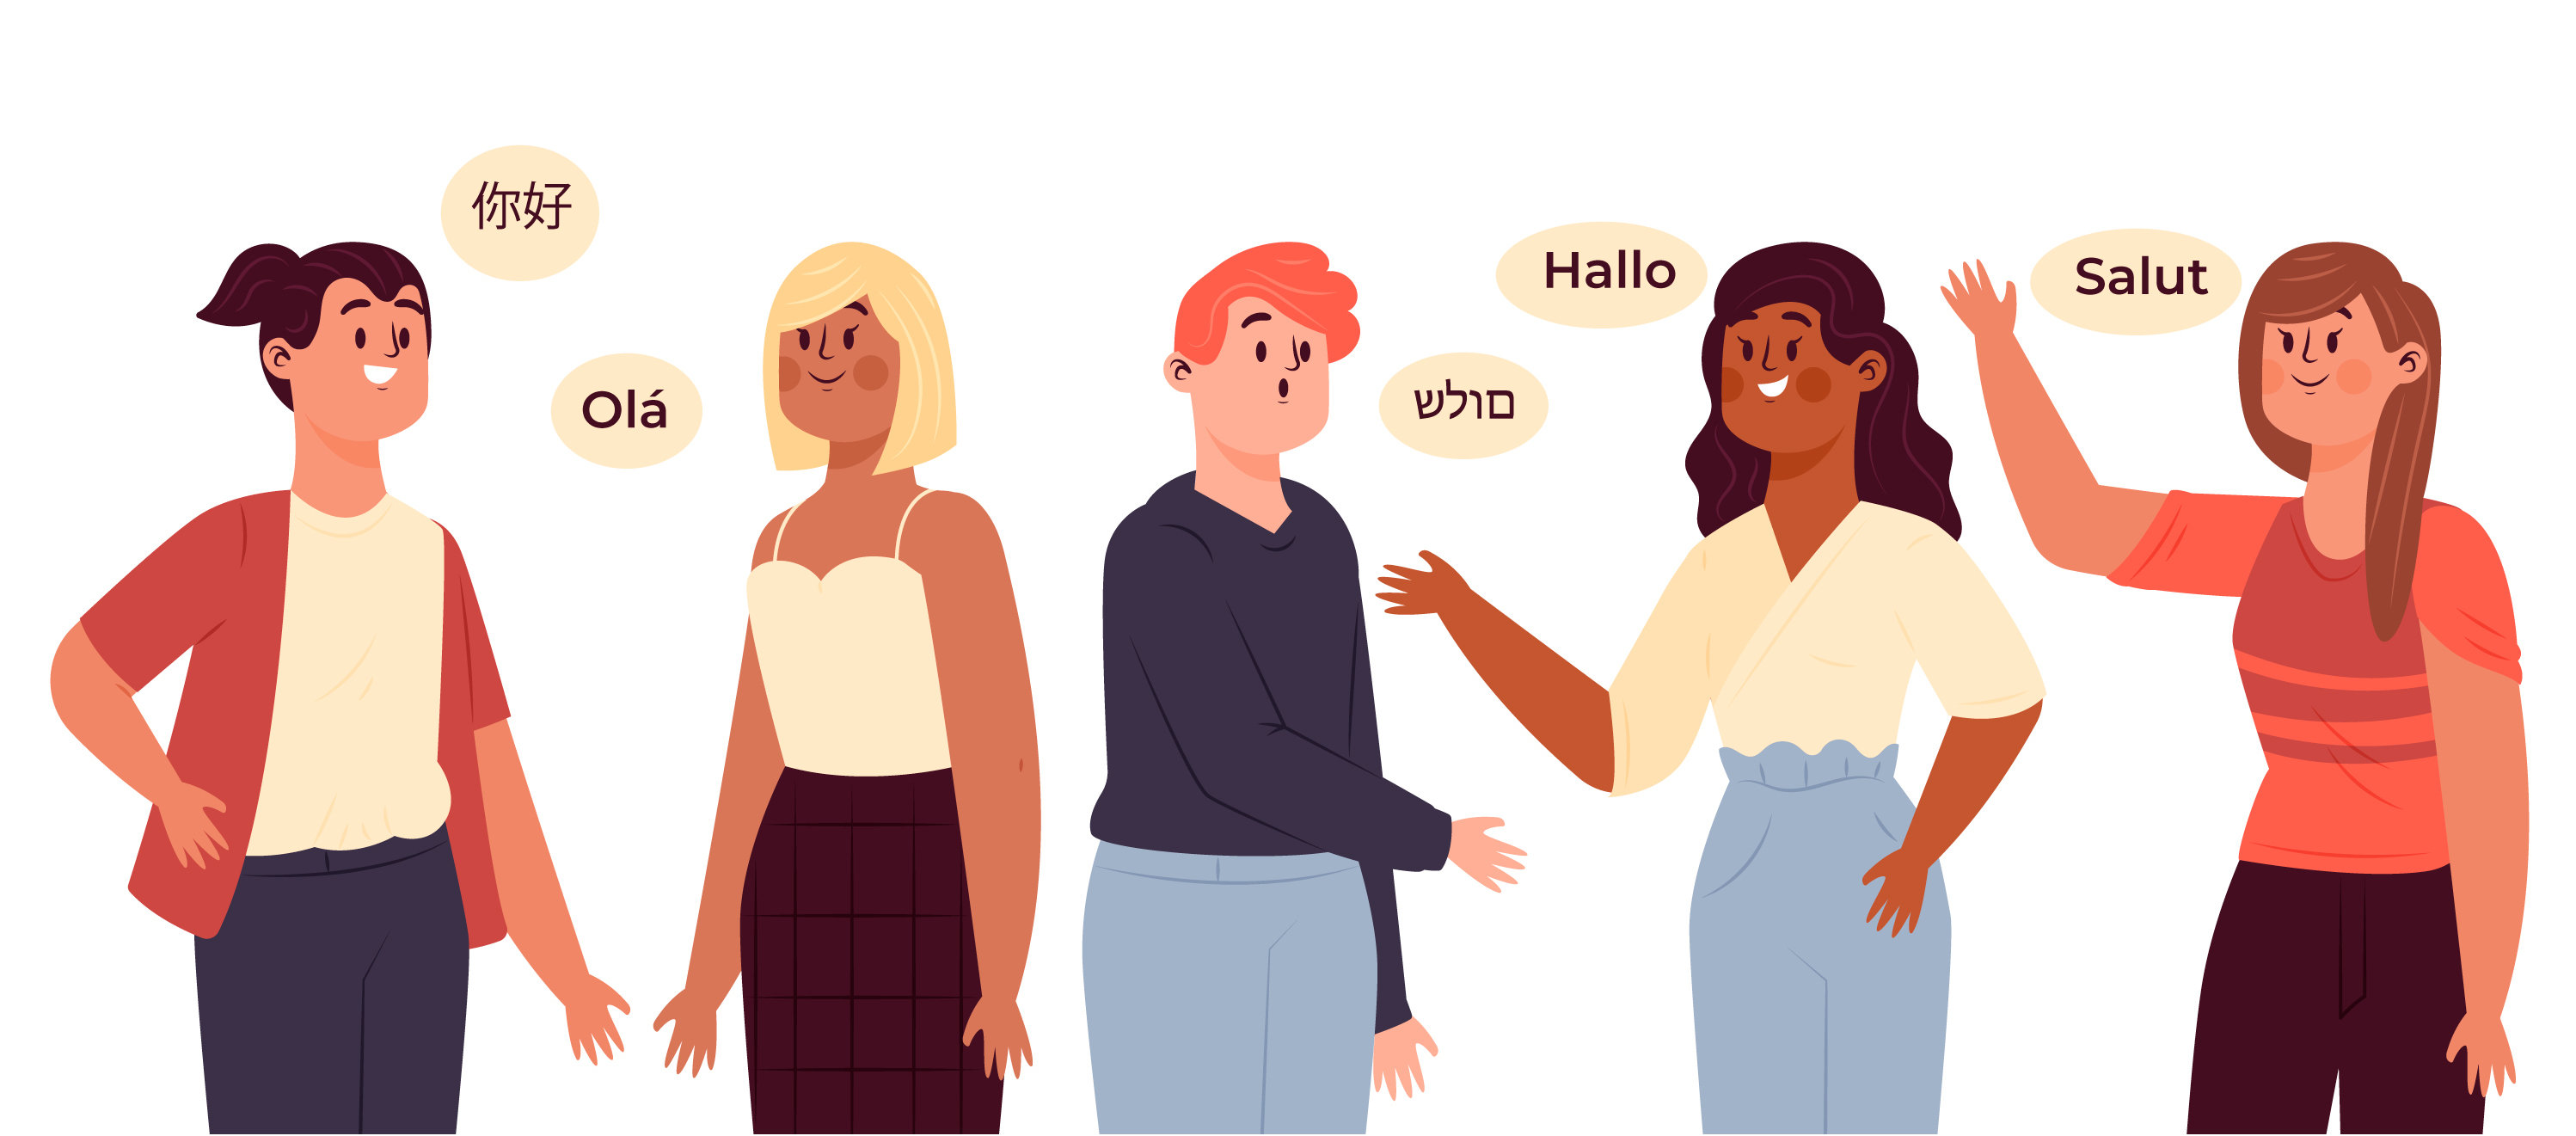 Picture of people saying hi in different language